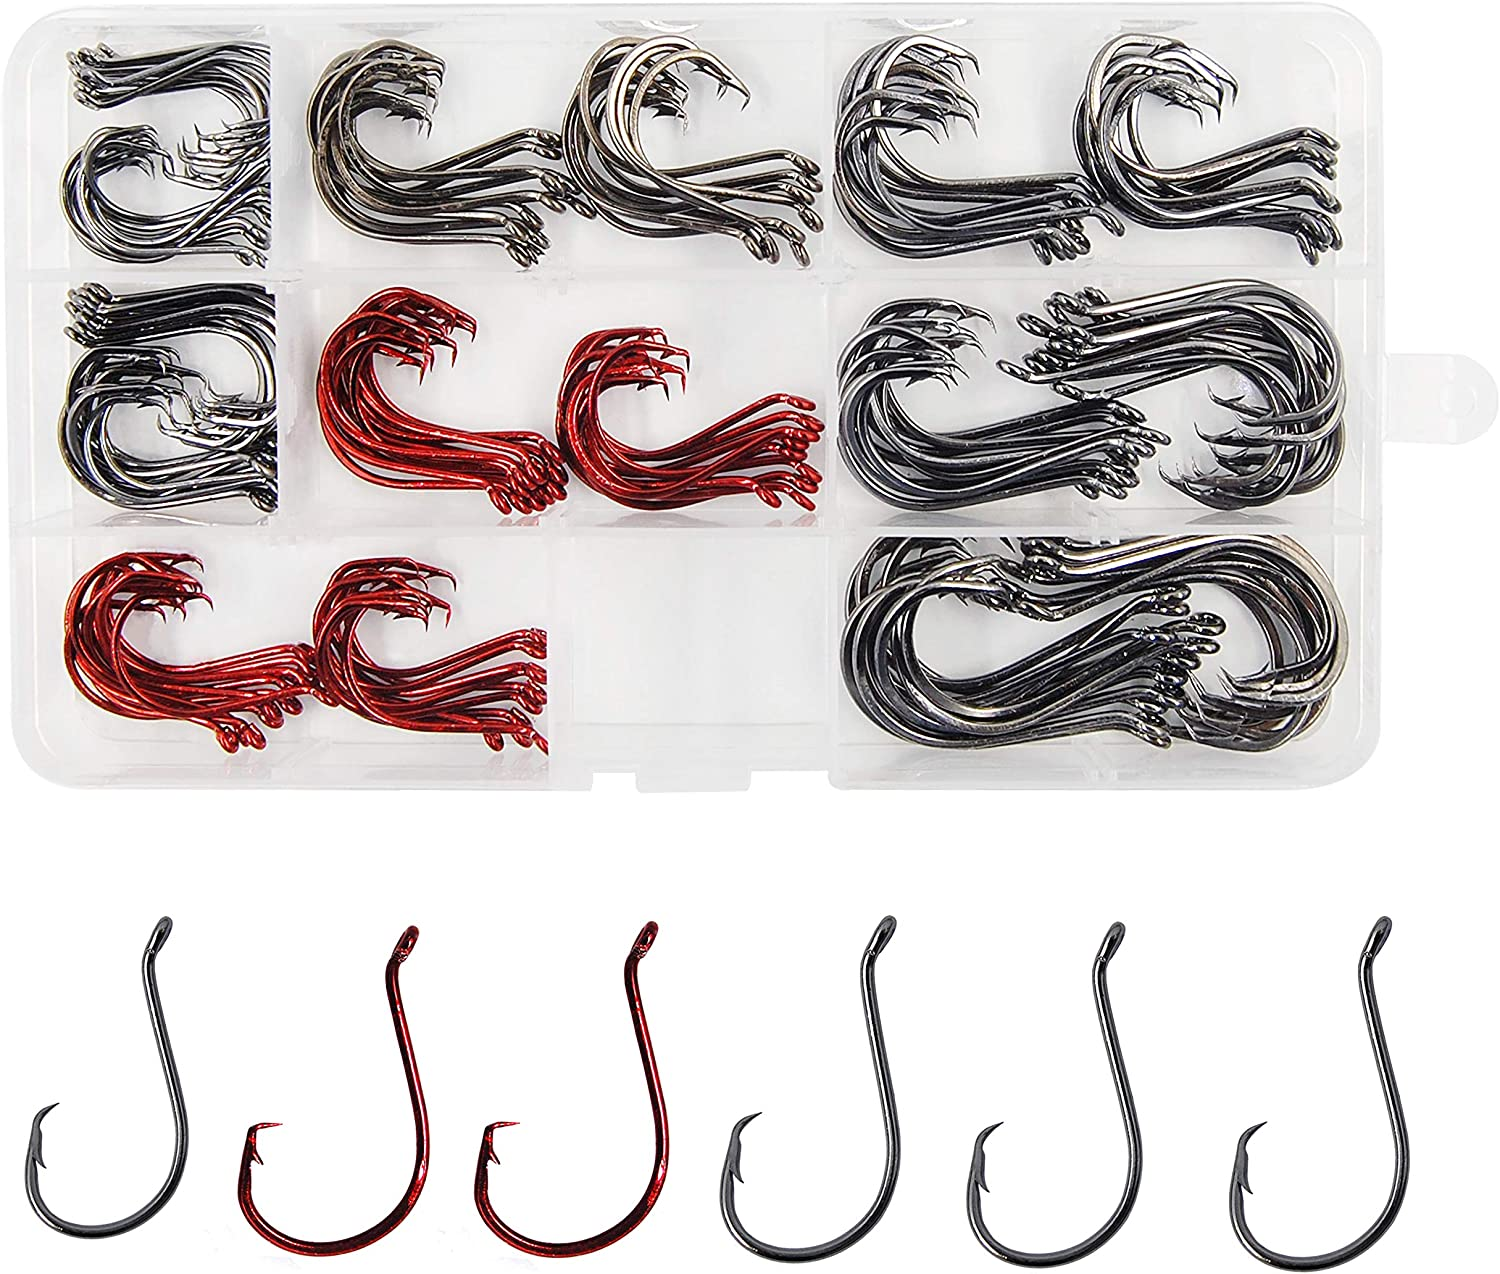 Shaddock Fishing 160pcs/box 7384 2X Strong Offset Sport Circle Hooks Black High Carbon Steel Fishing Hooks Sharp Octopus Fishing Hooks-Size:#1-5/0